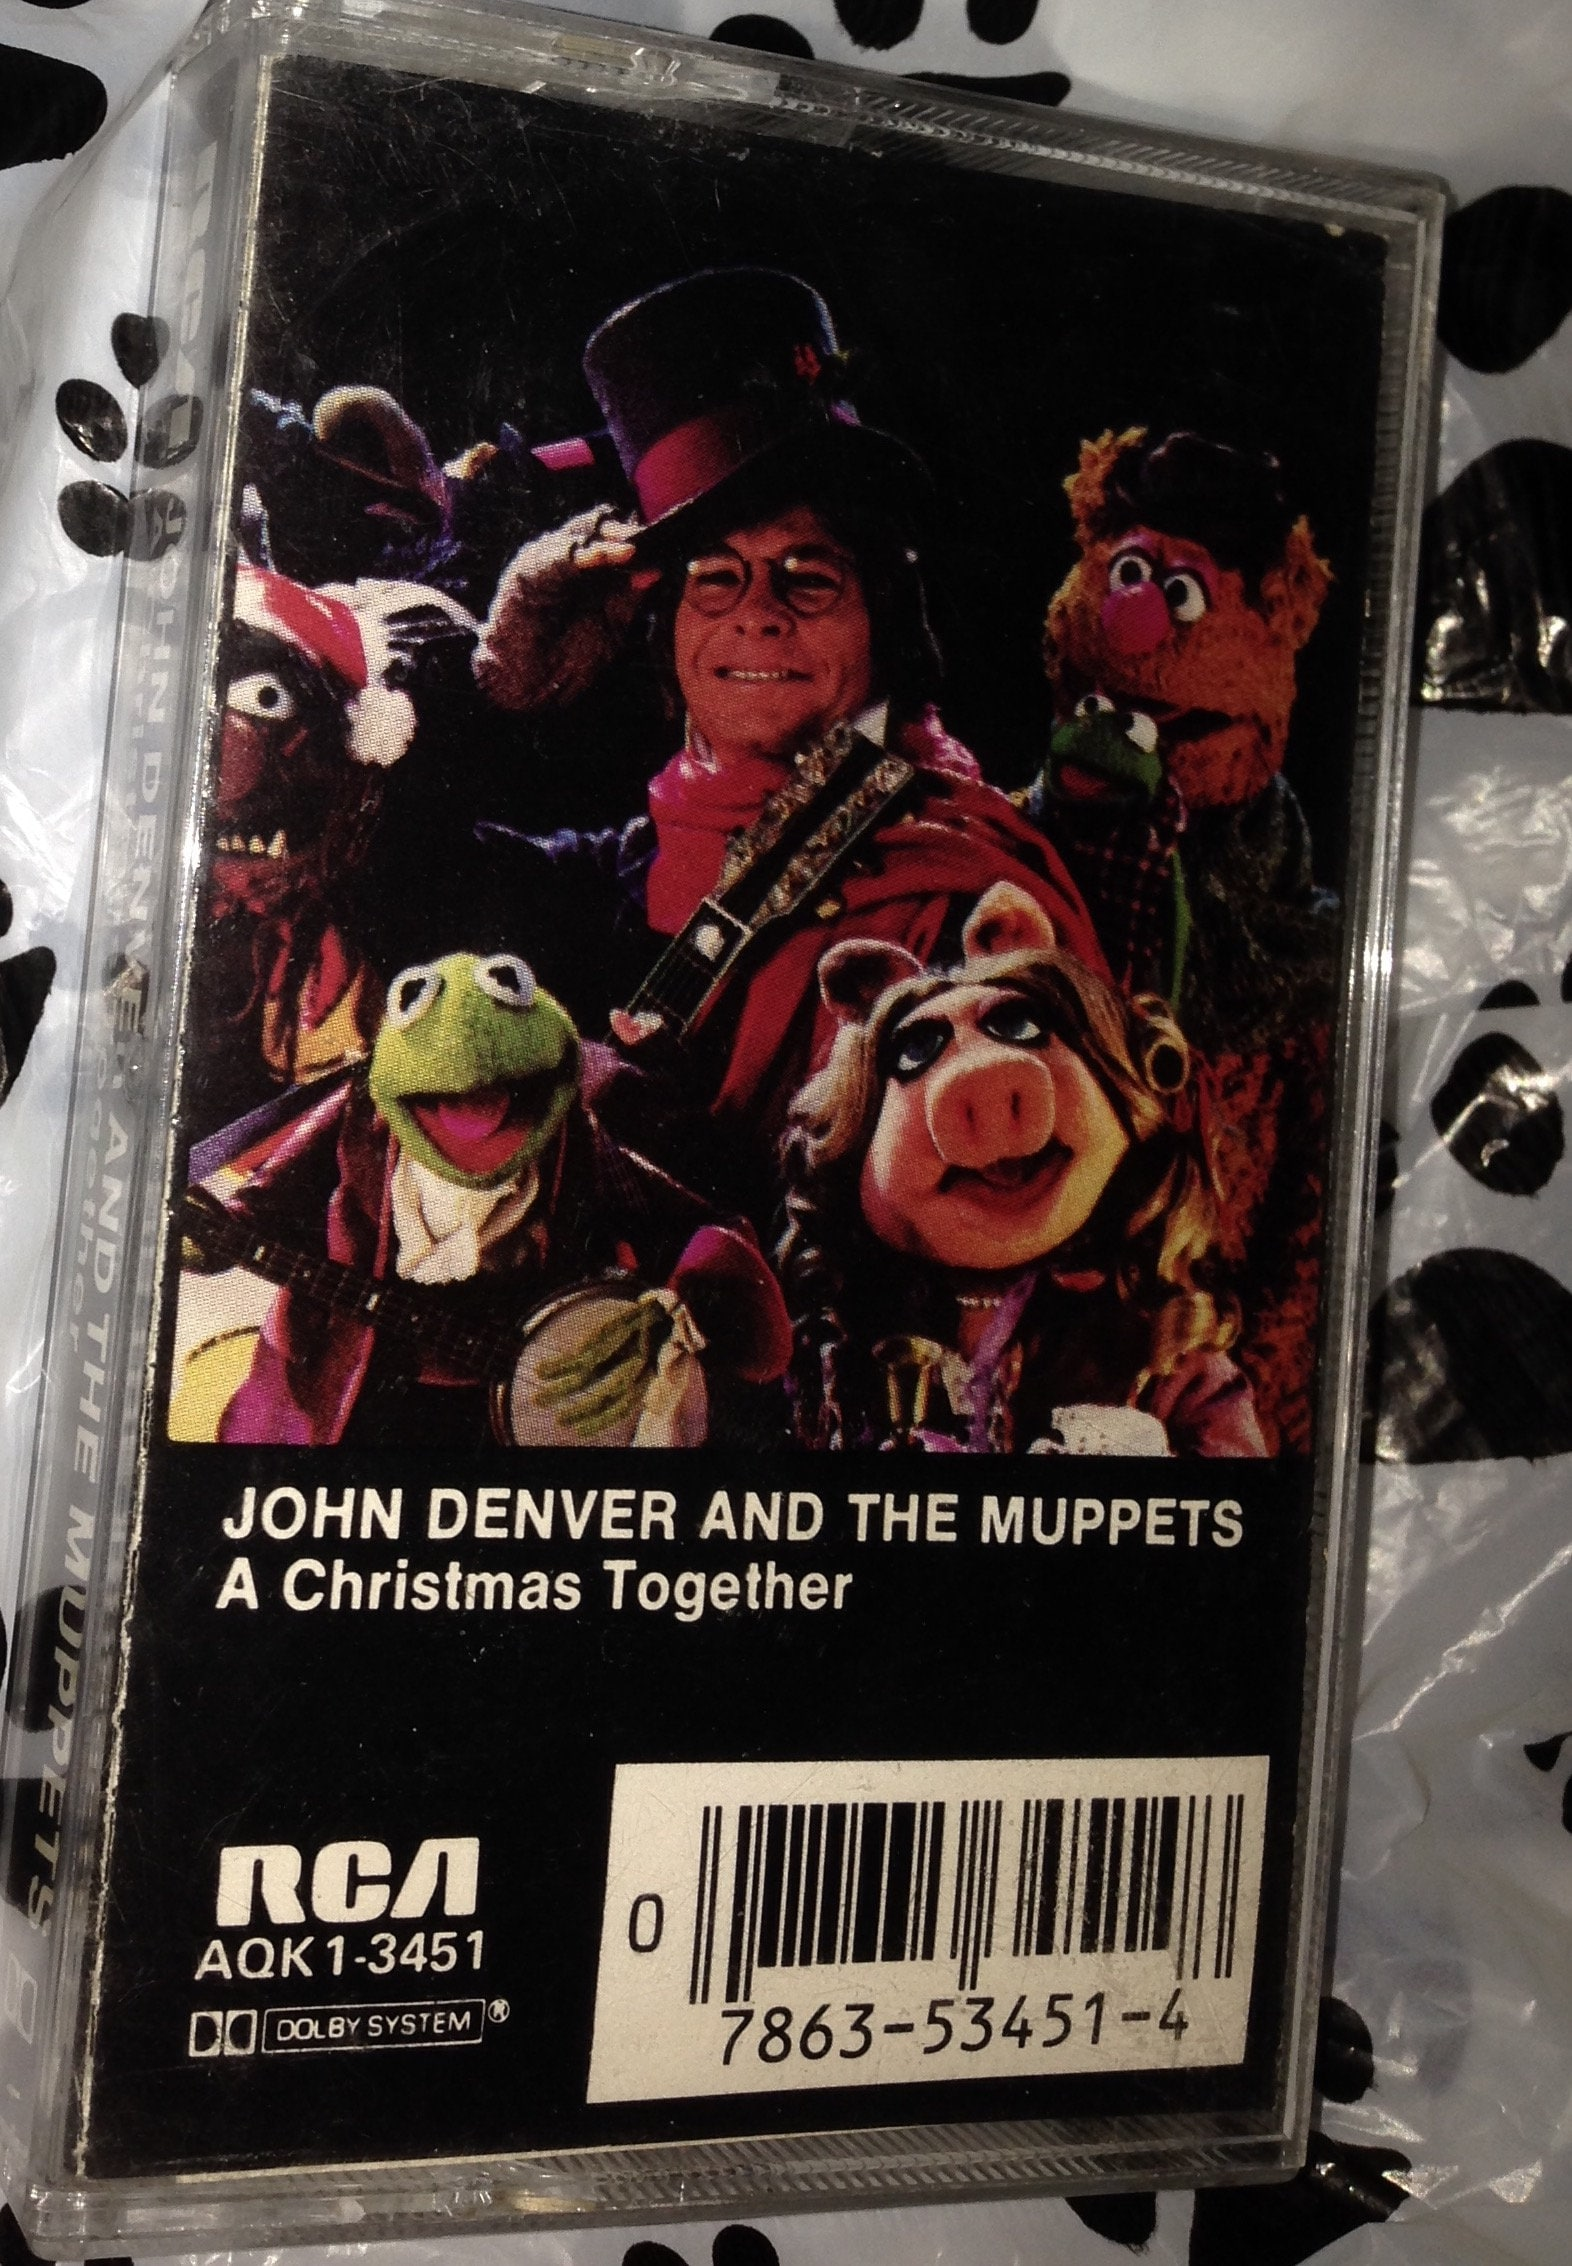 John Denver and the Muppets A Christmas Together audio | Etsy